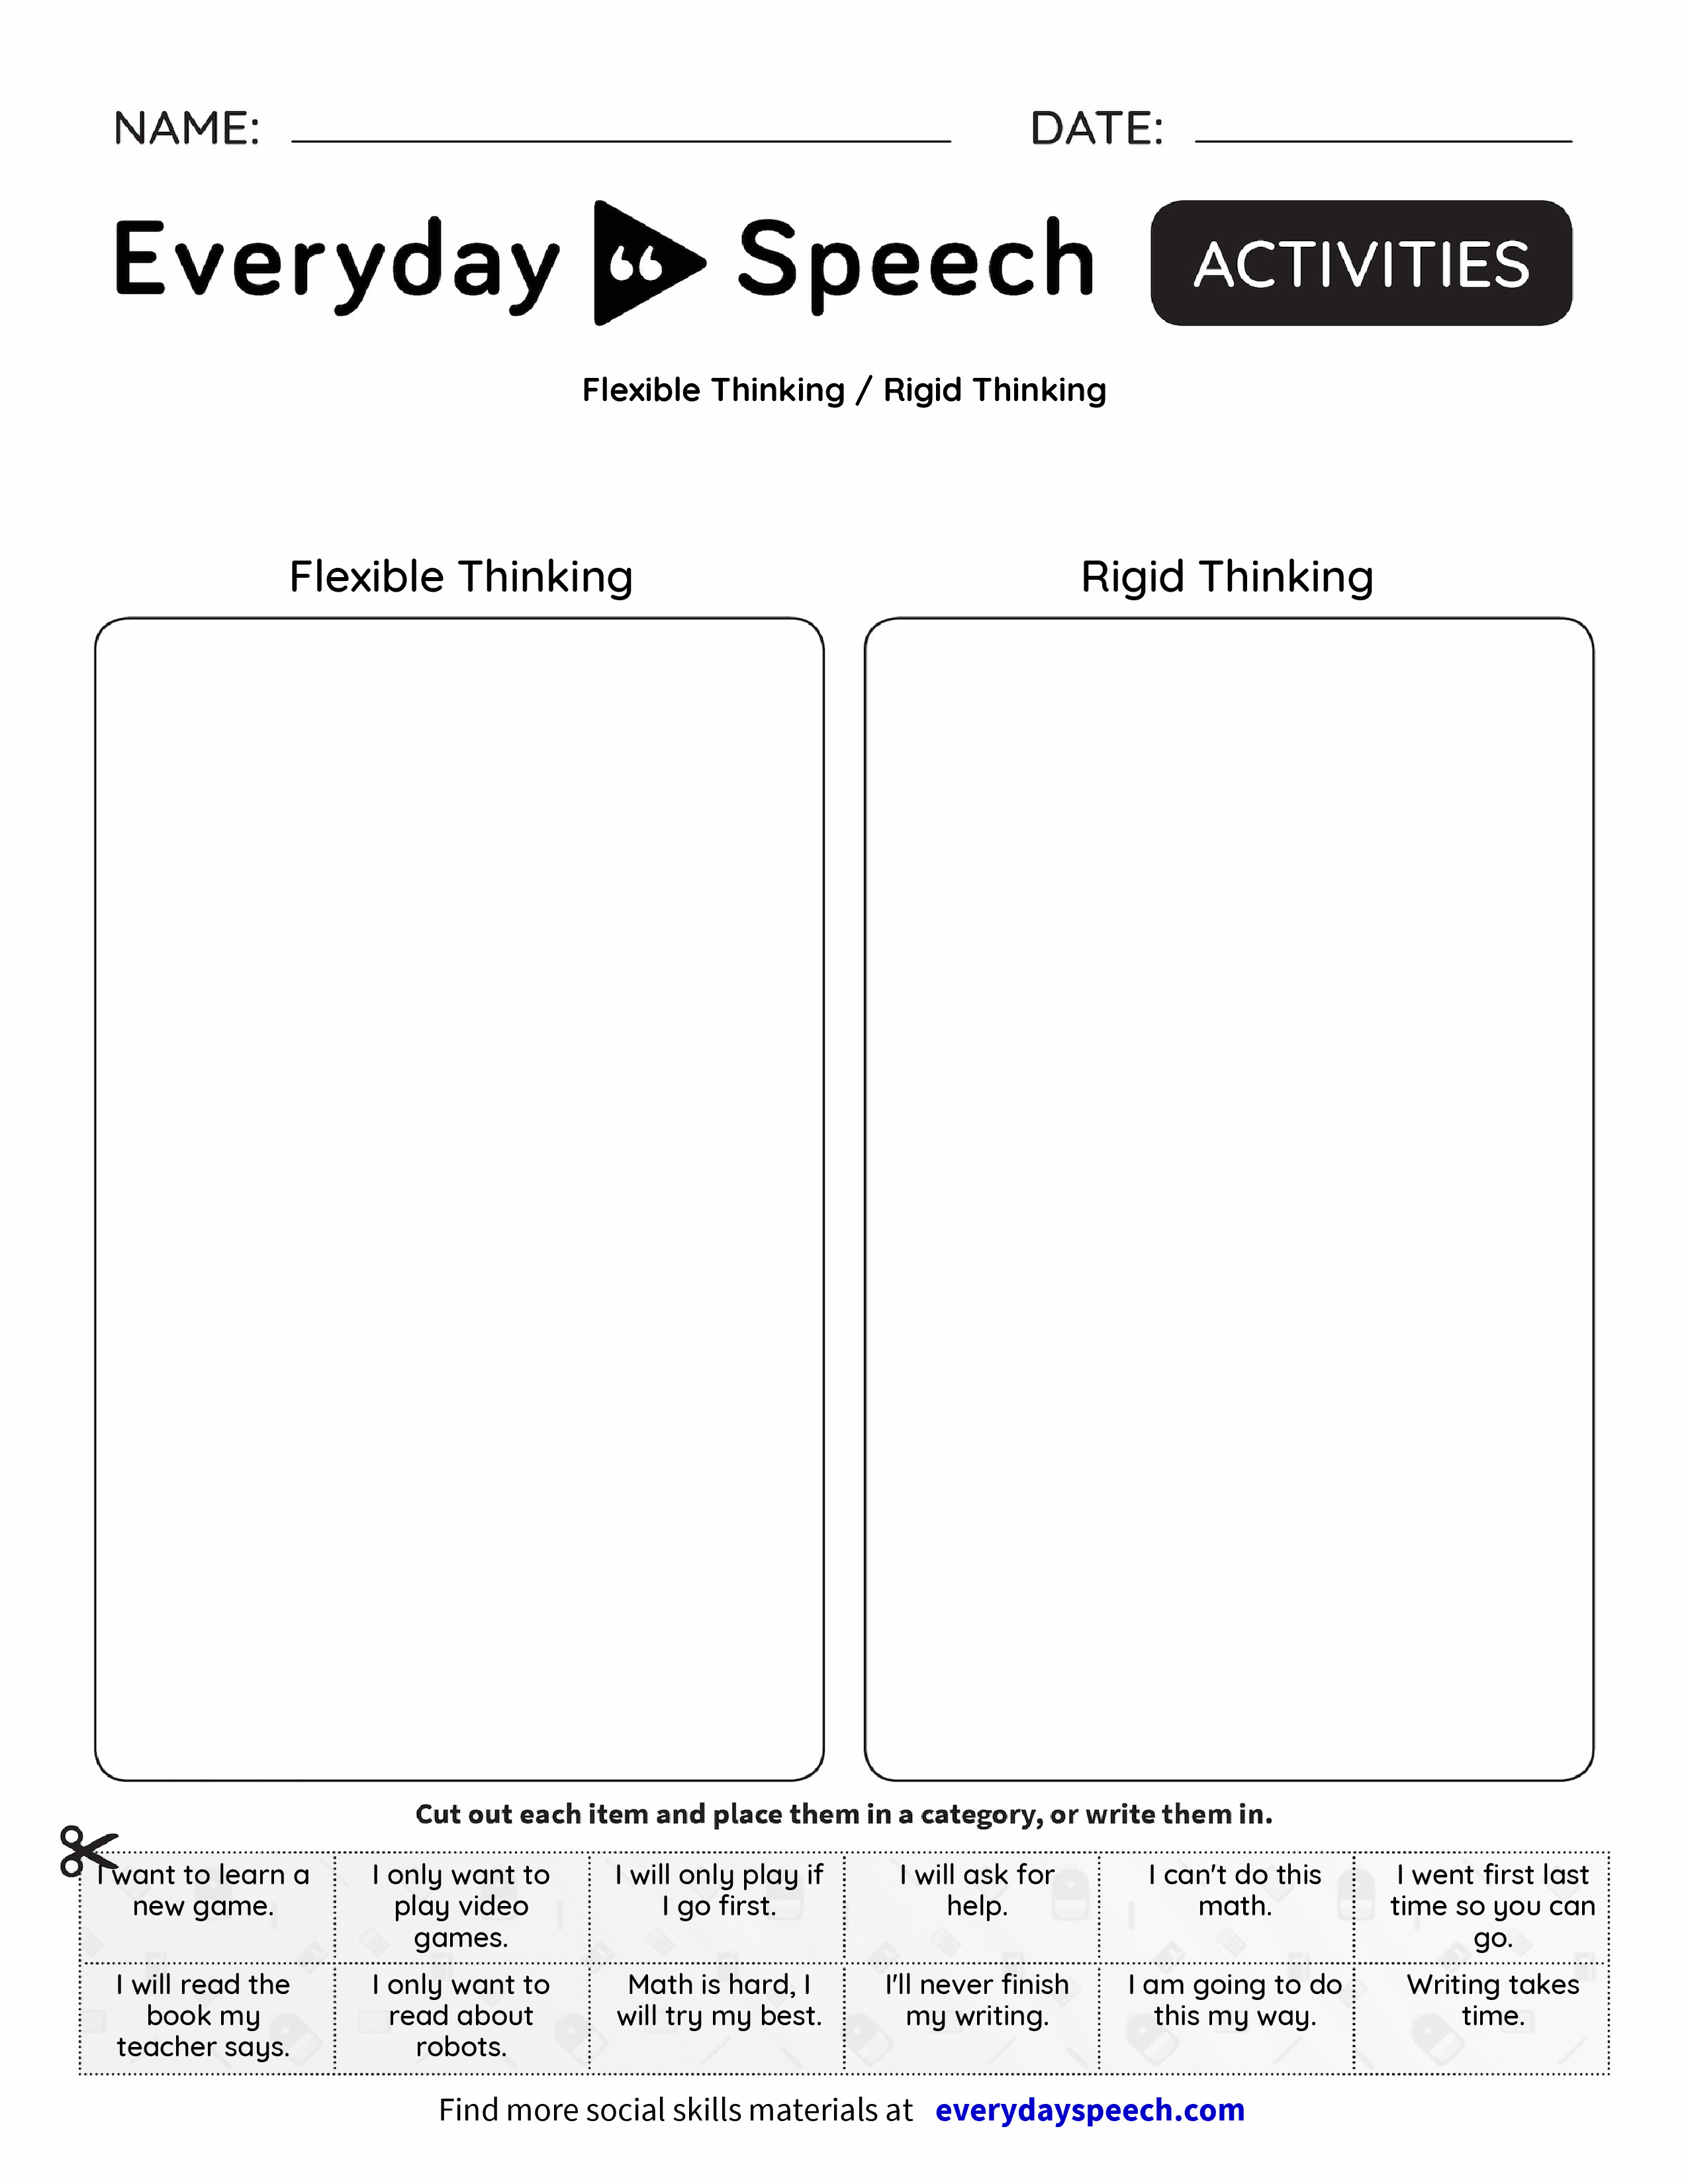 worksheet Social Thinking Worksheets Free flexible thinking rigid everyday speech preview